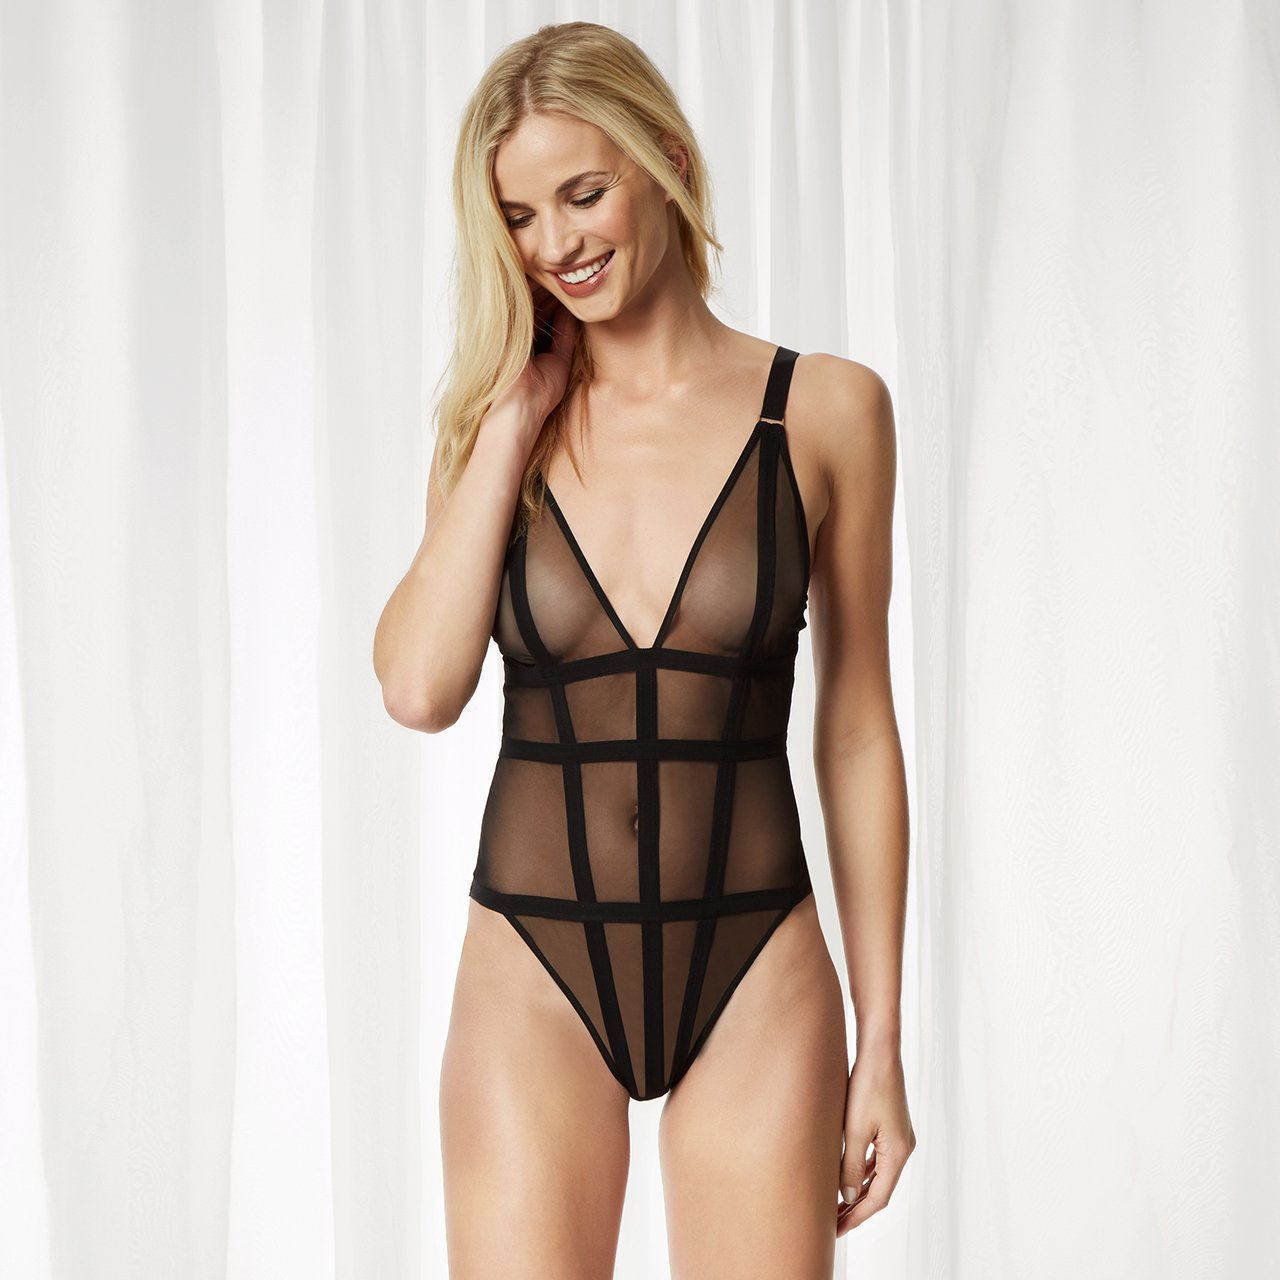 Bluebella Karolina Body, new in at £38